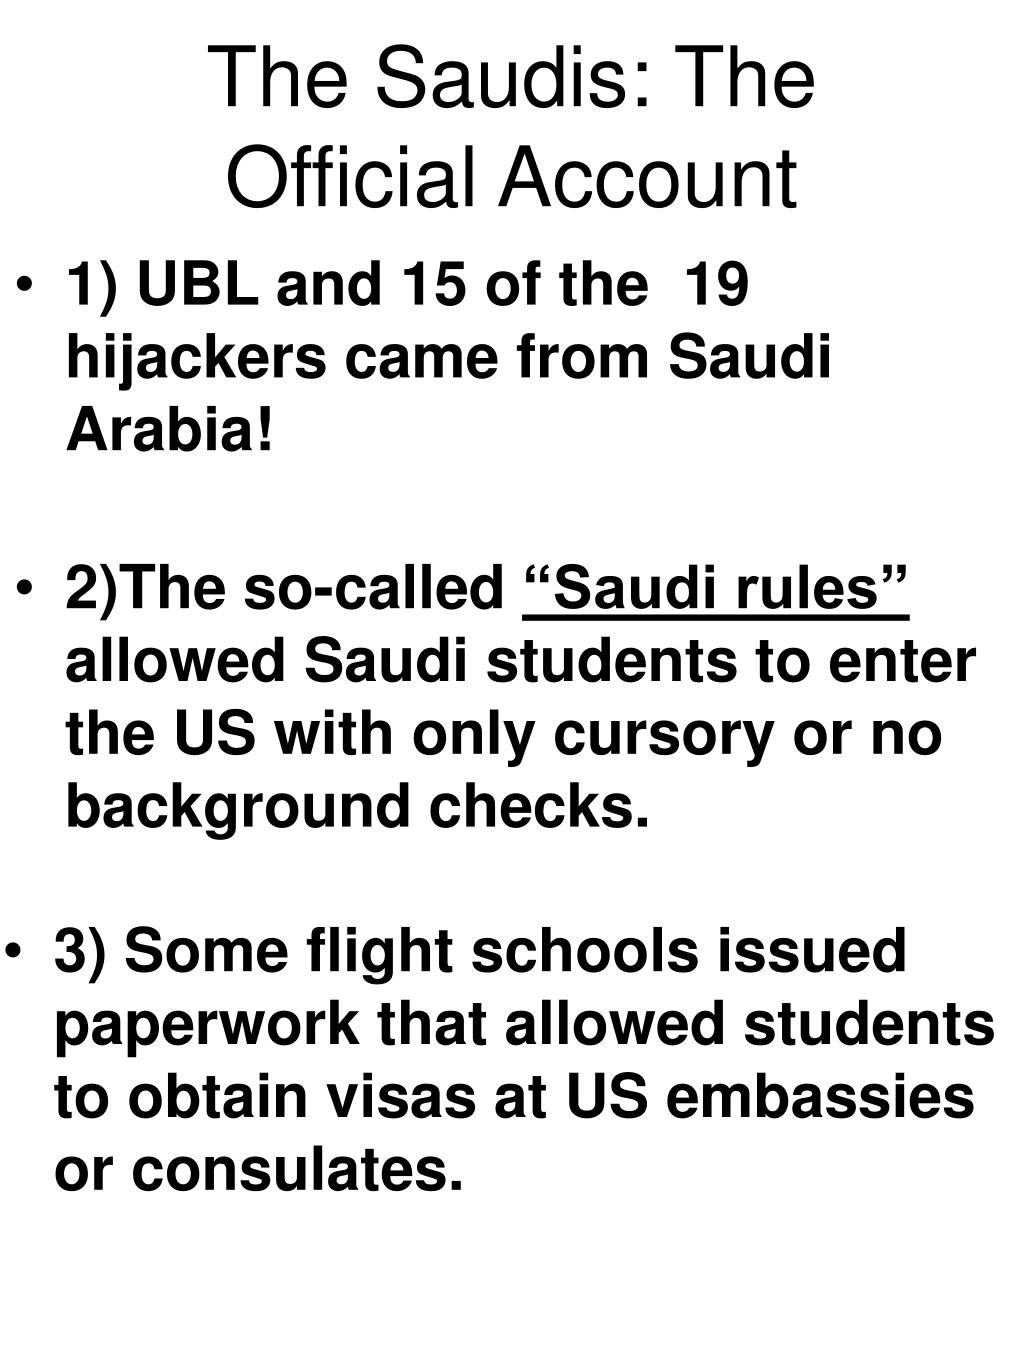 The Saudis: The Official Account